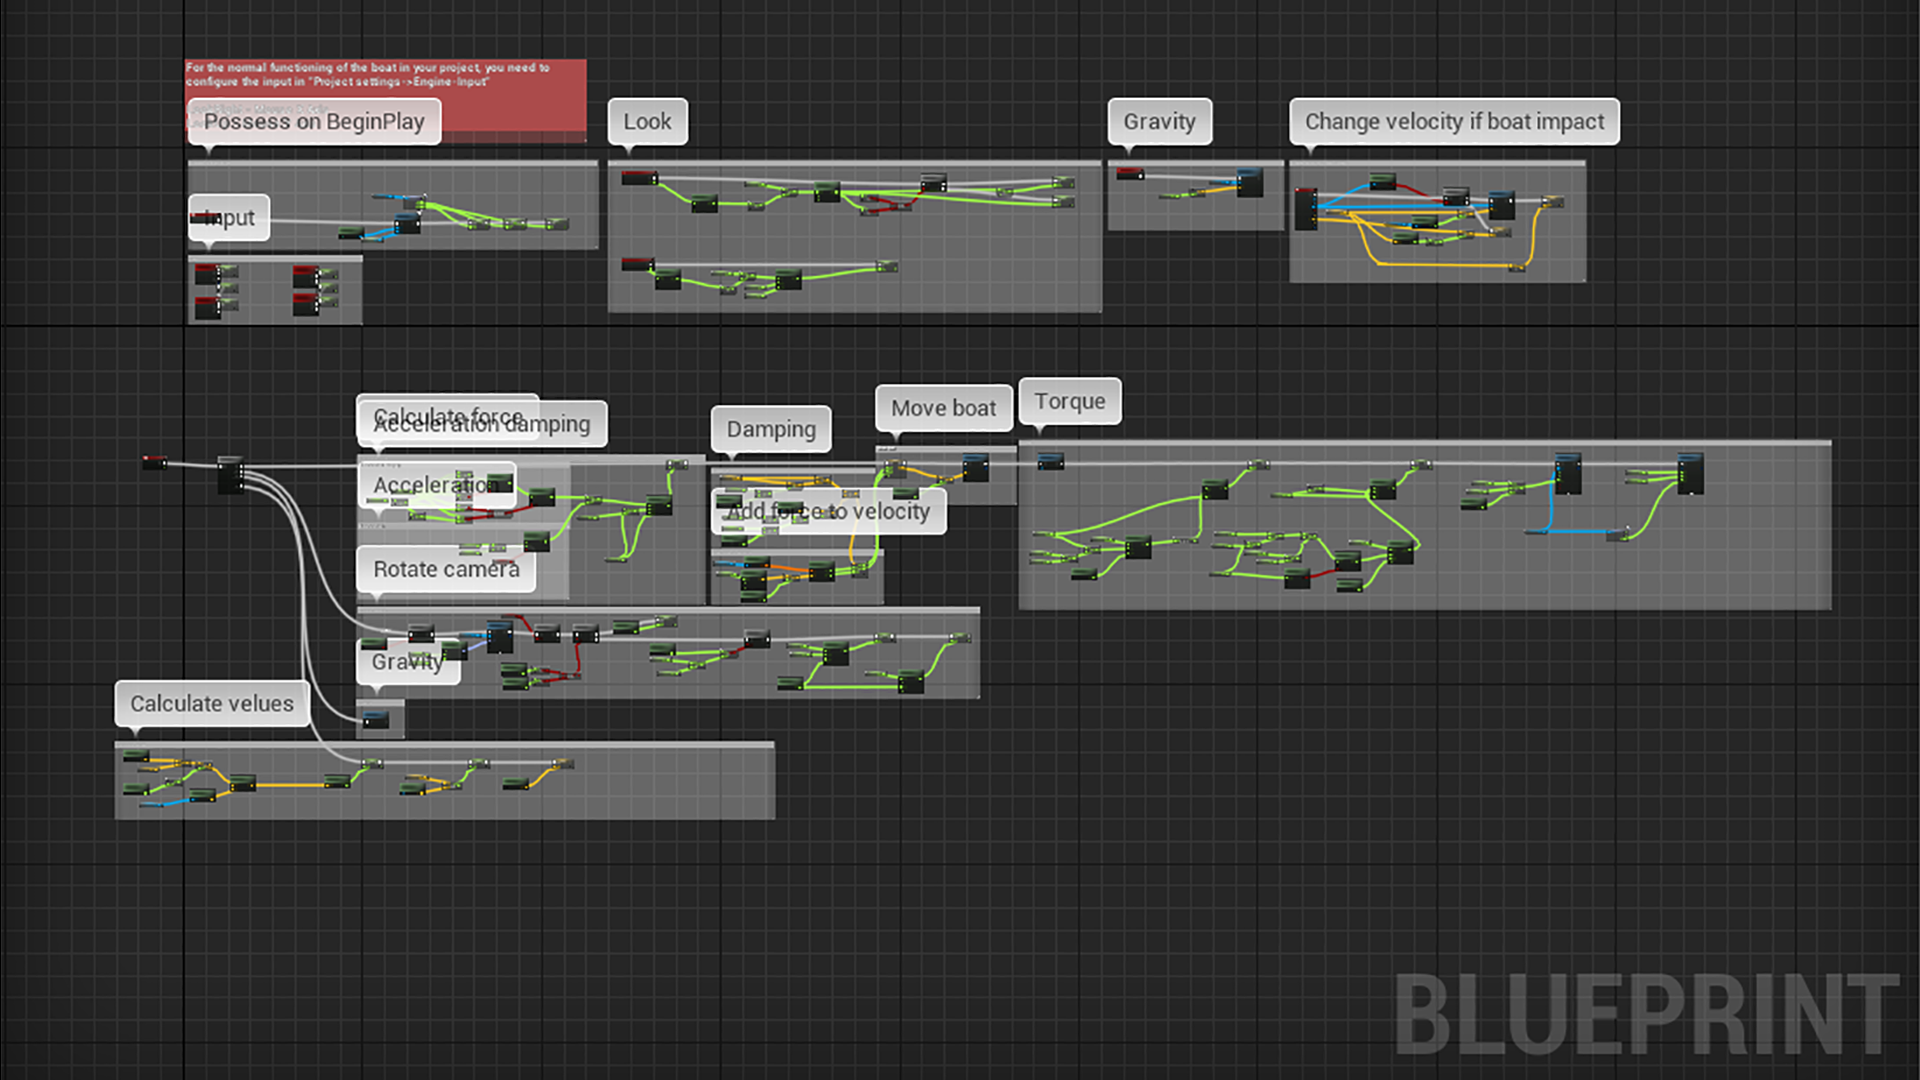 Drivable Boat (with buoyancy) by Sharki in Blueprints - UE4 Marketplace